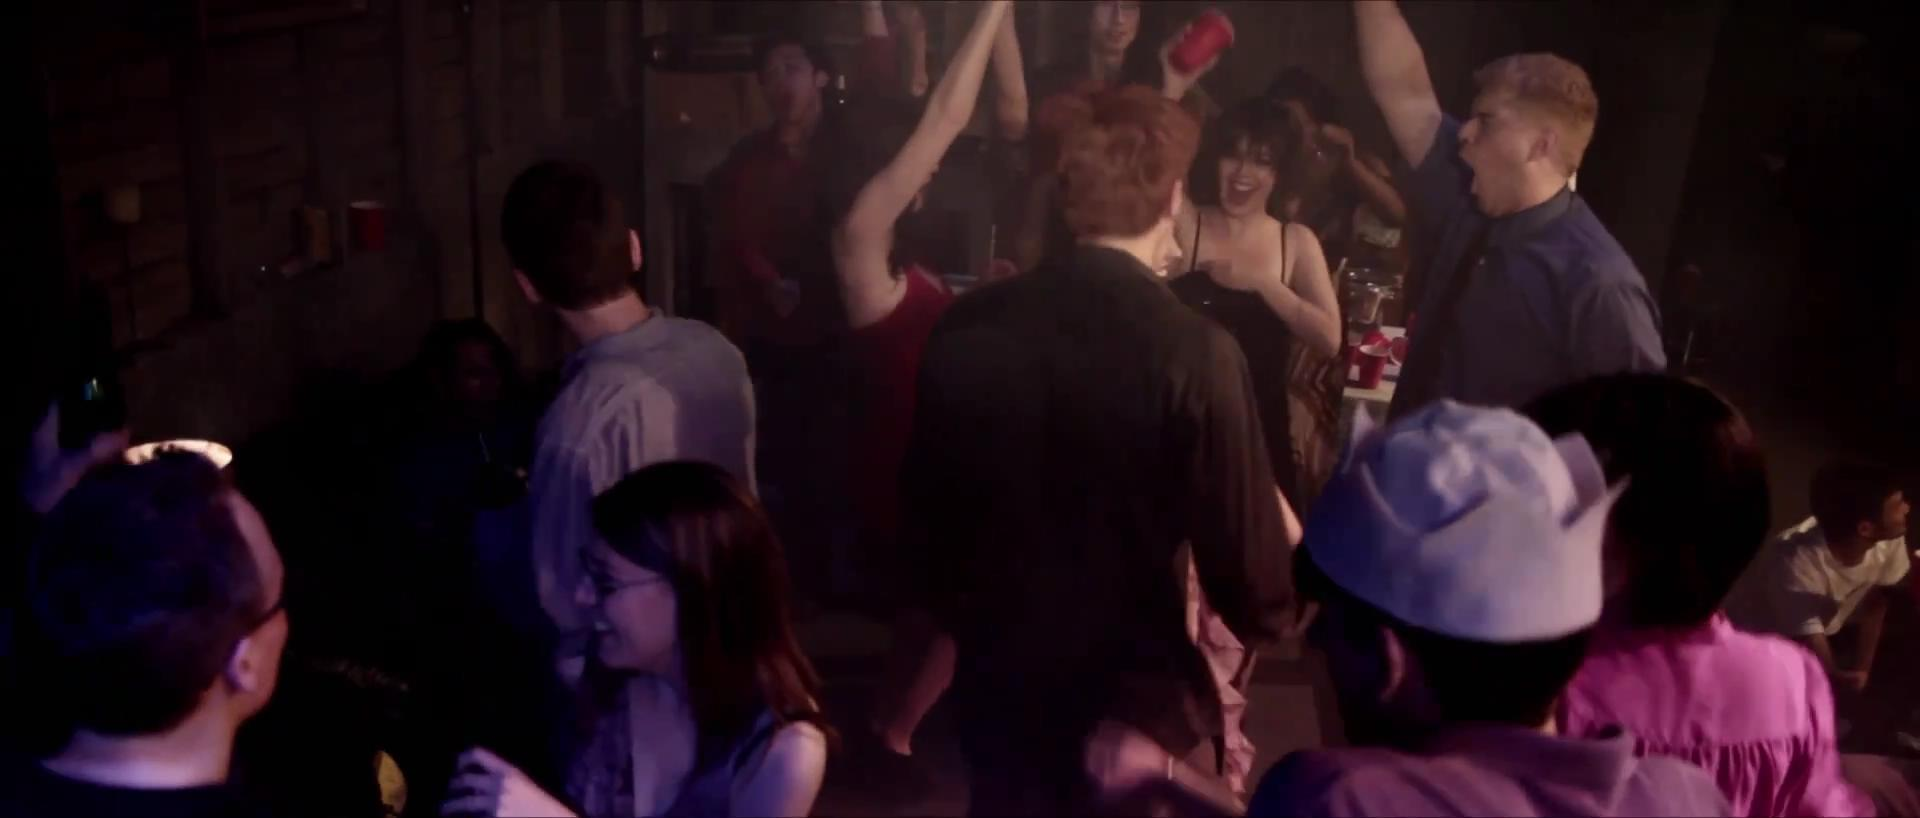 rfmt-13-partying-3